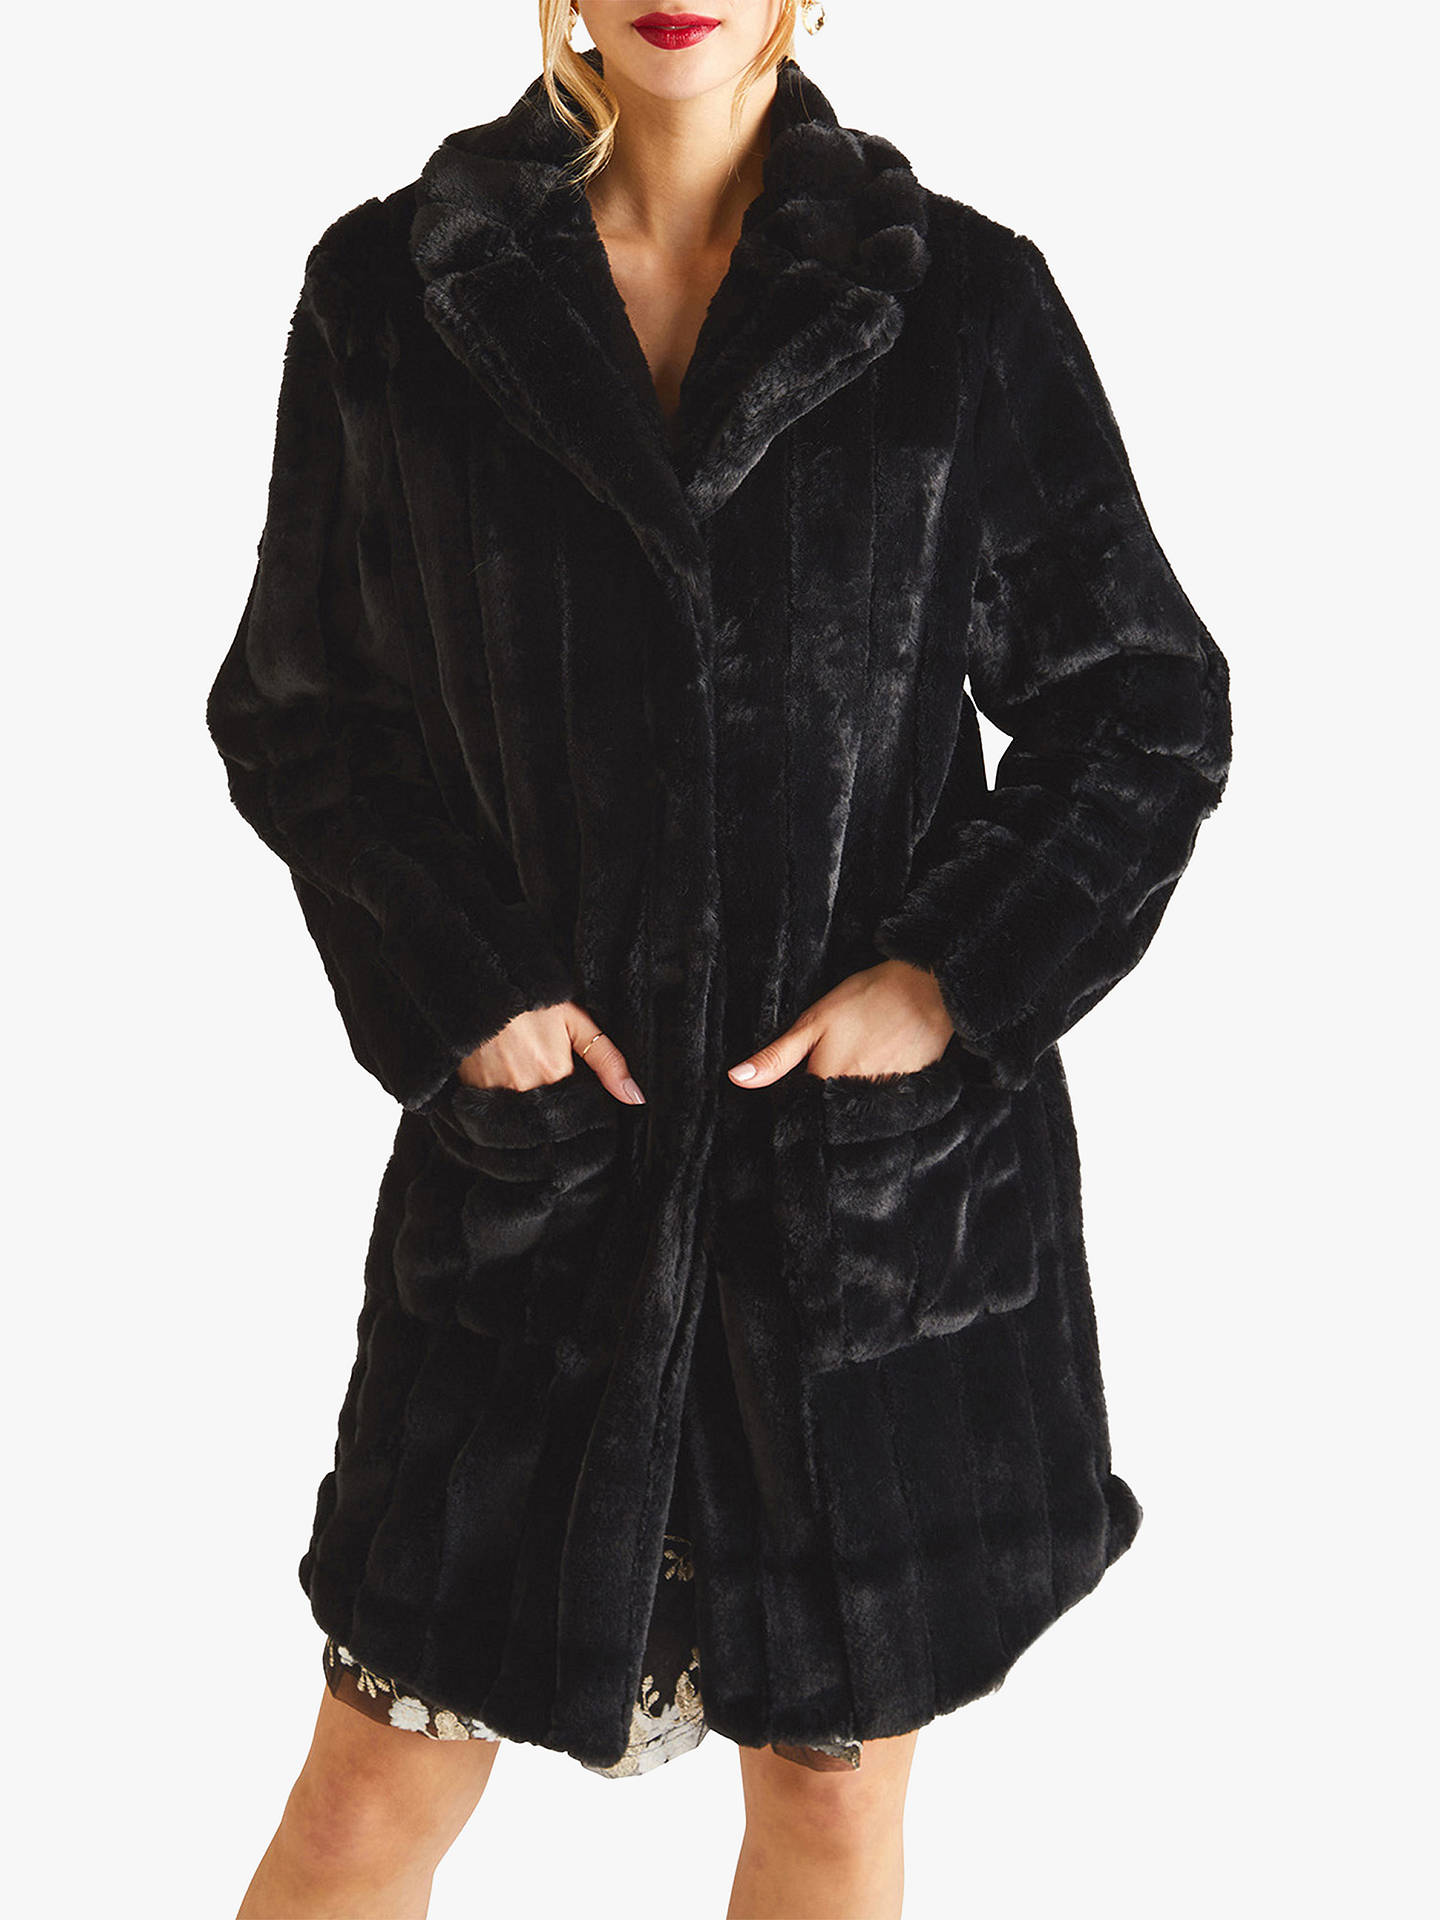 5d531a56d1 Buy Yumi Patch Pocket Faux Fur Coat, Black, 8 Online at johnlewis.com ...